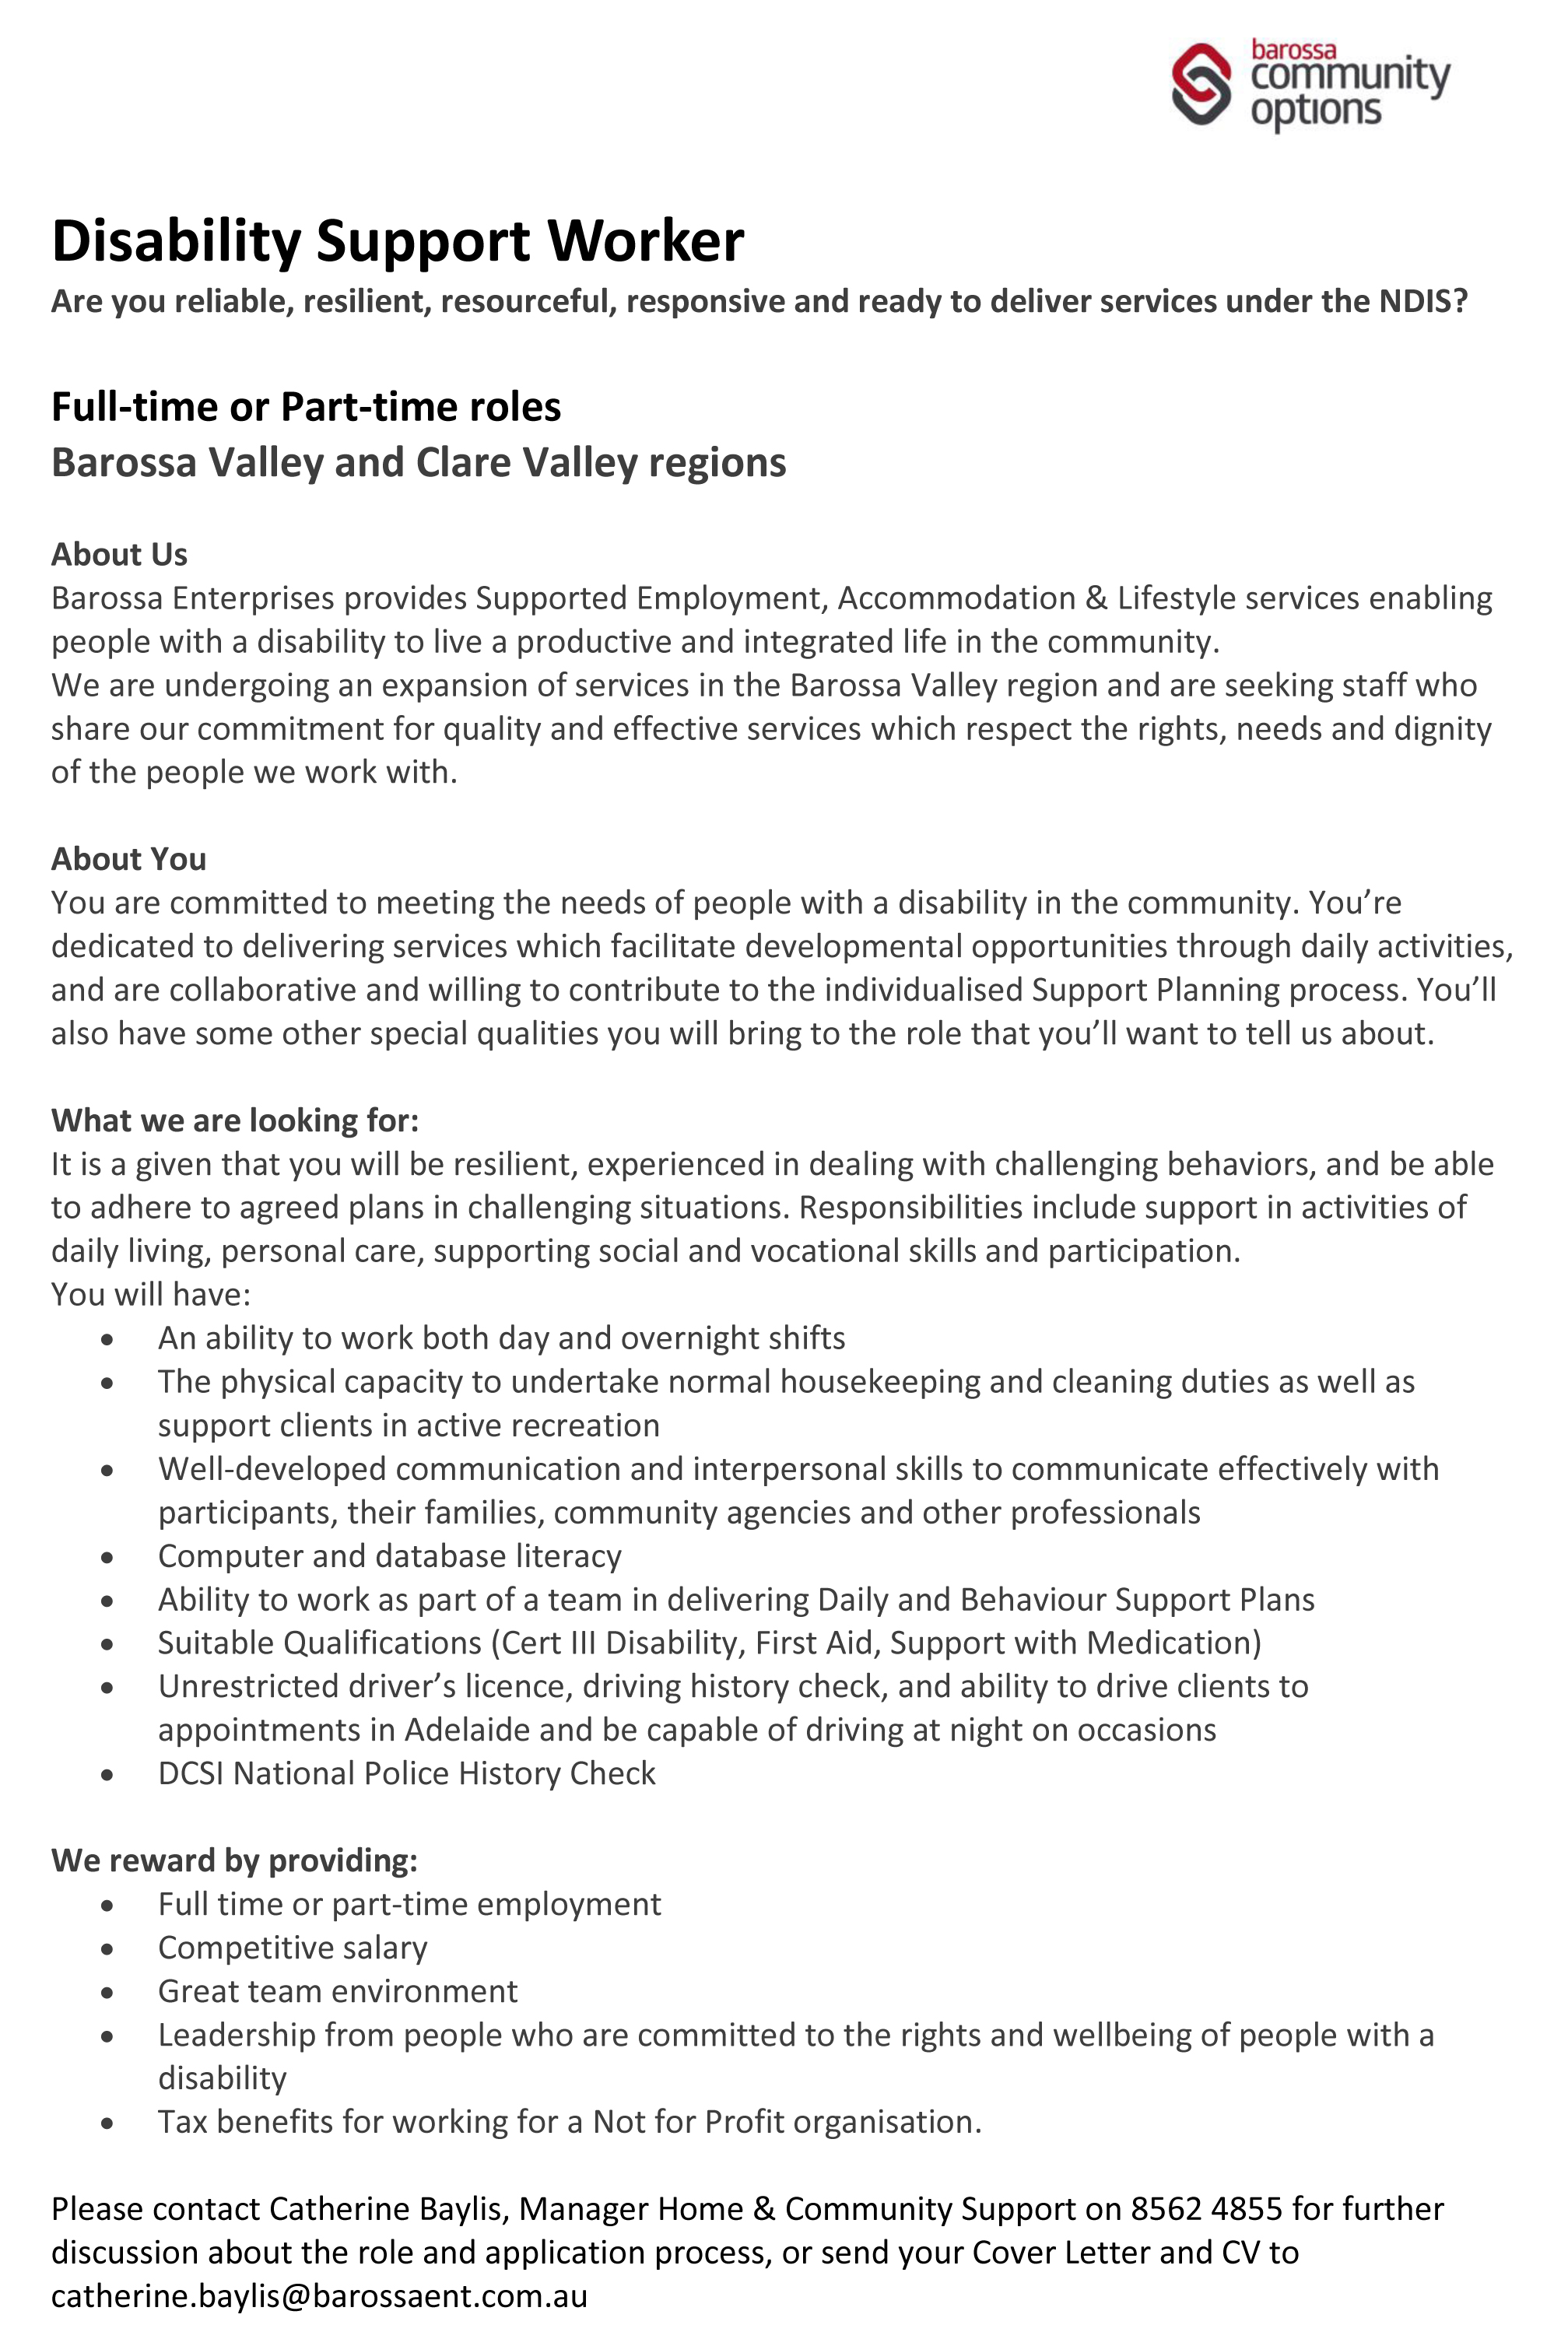 Disability Support Worker Advert - Clare Valley Enterprises